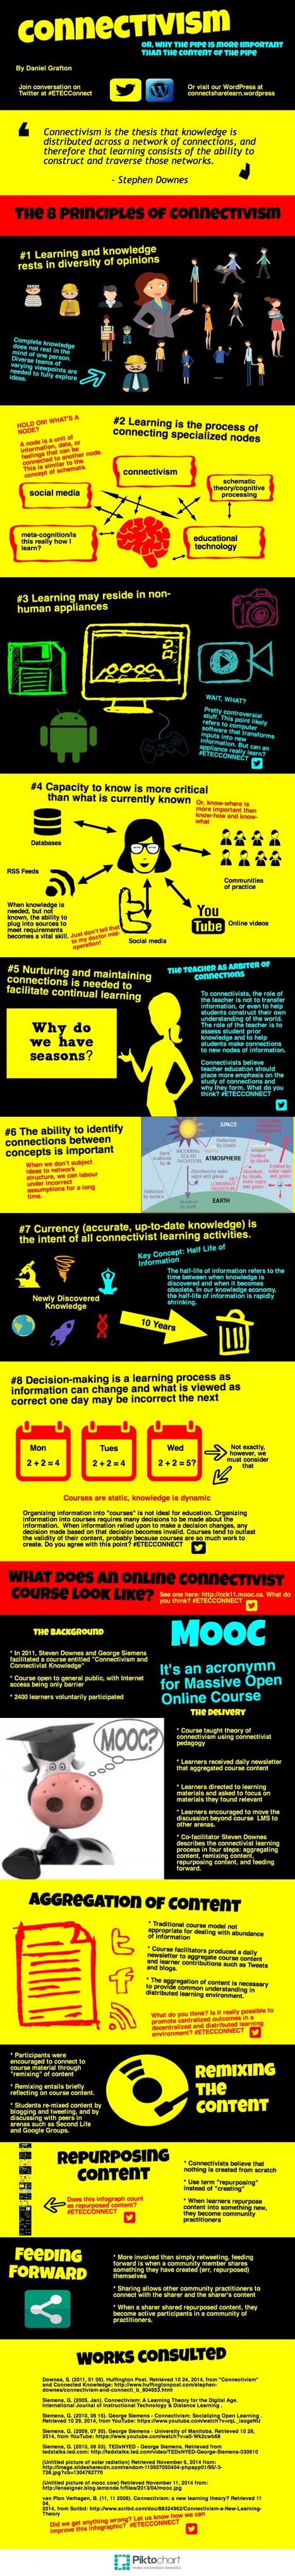 Connectivism [Infographic] | Pedalogica: educación y TIC | Scoop.it